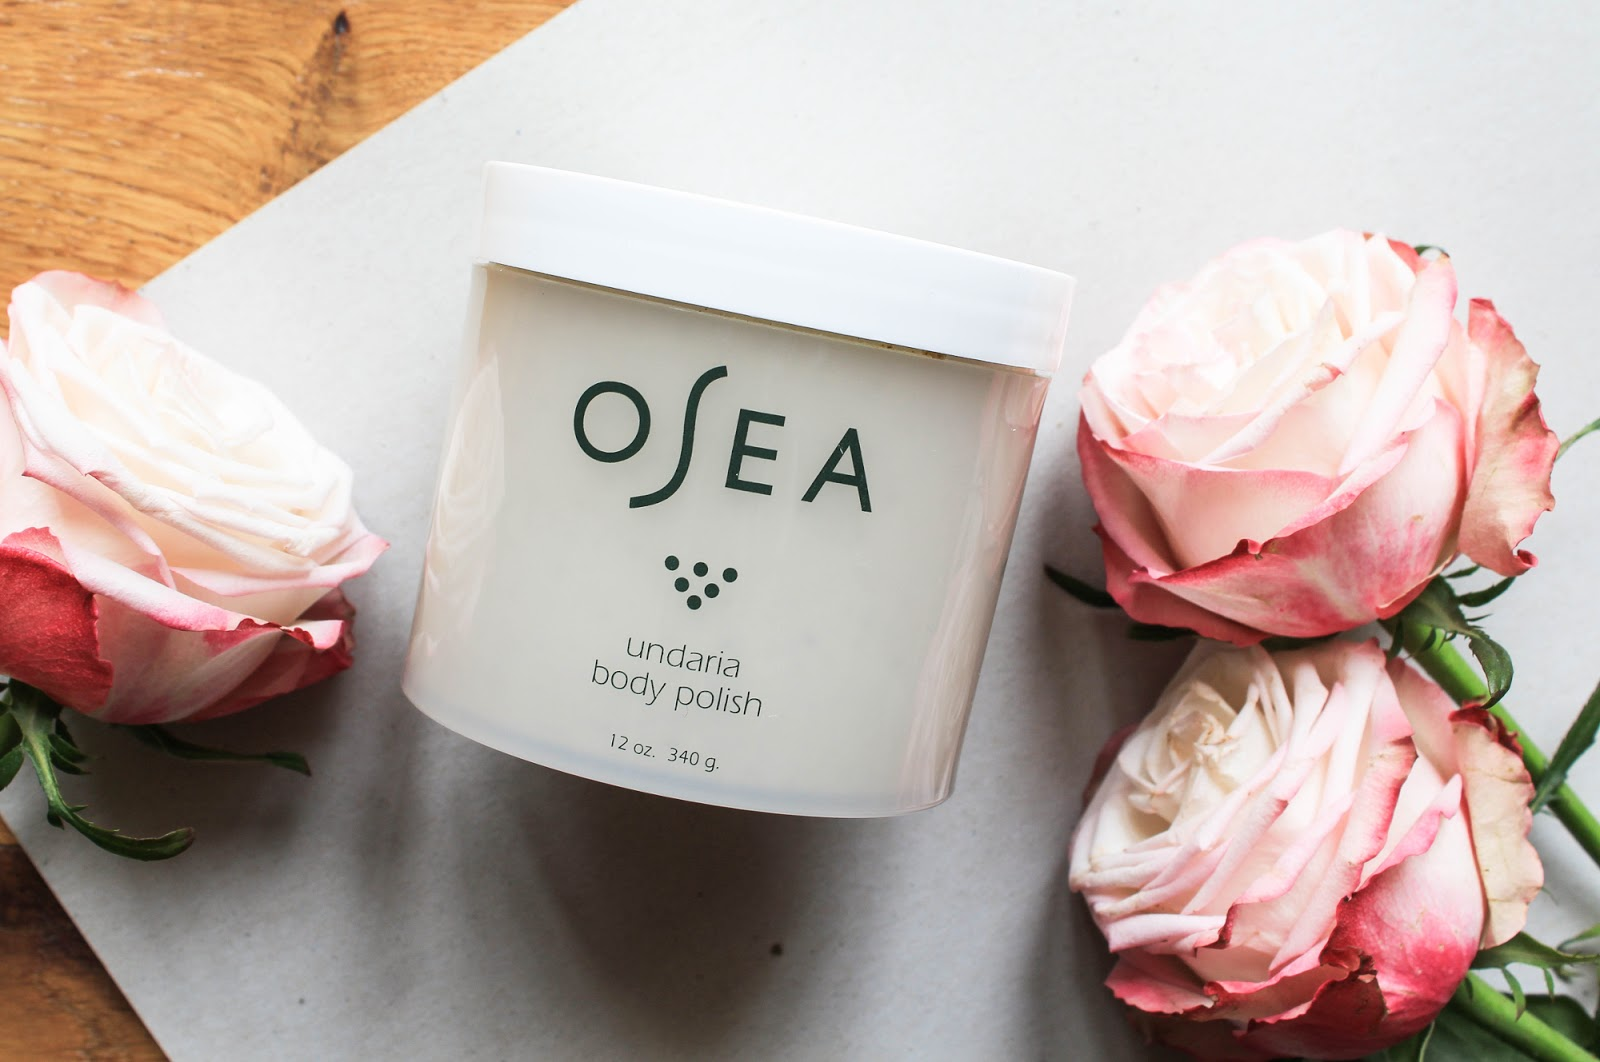 OSEA Undaria Body Polish May Beauty Heroes box